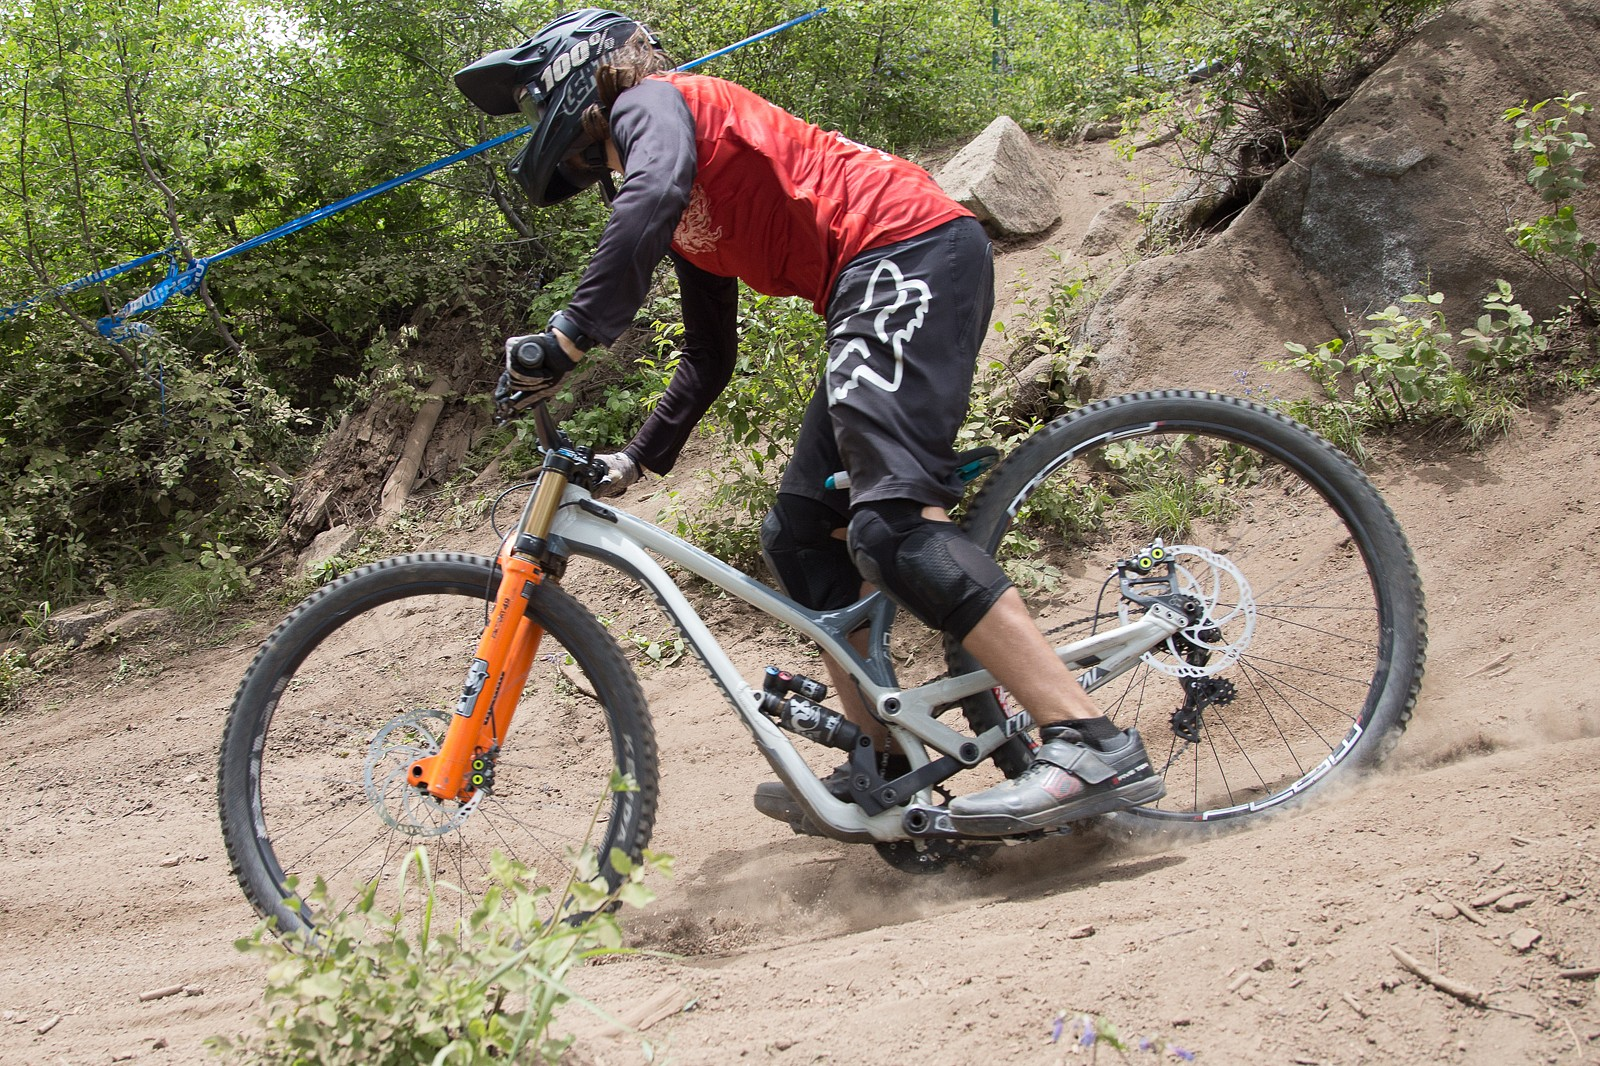 G-Out Project, Tamarack #USDH National NW Cup - G-Out Project - Tamarack NW Cup / #USDH - Mountain Biking Pictures - Vital MTB